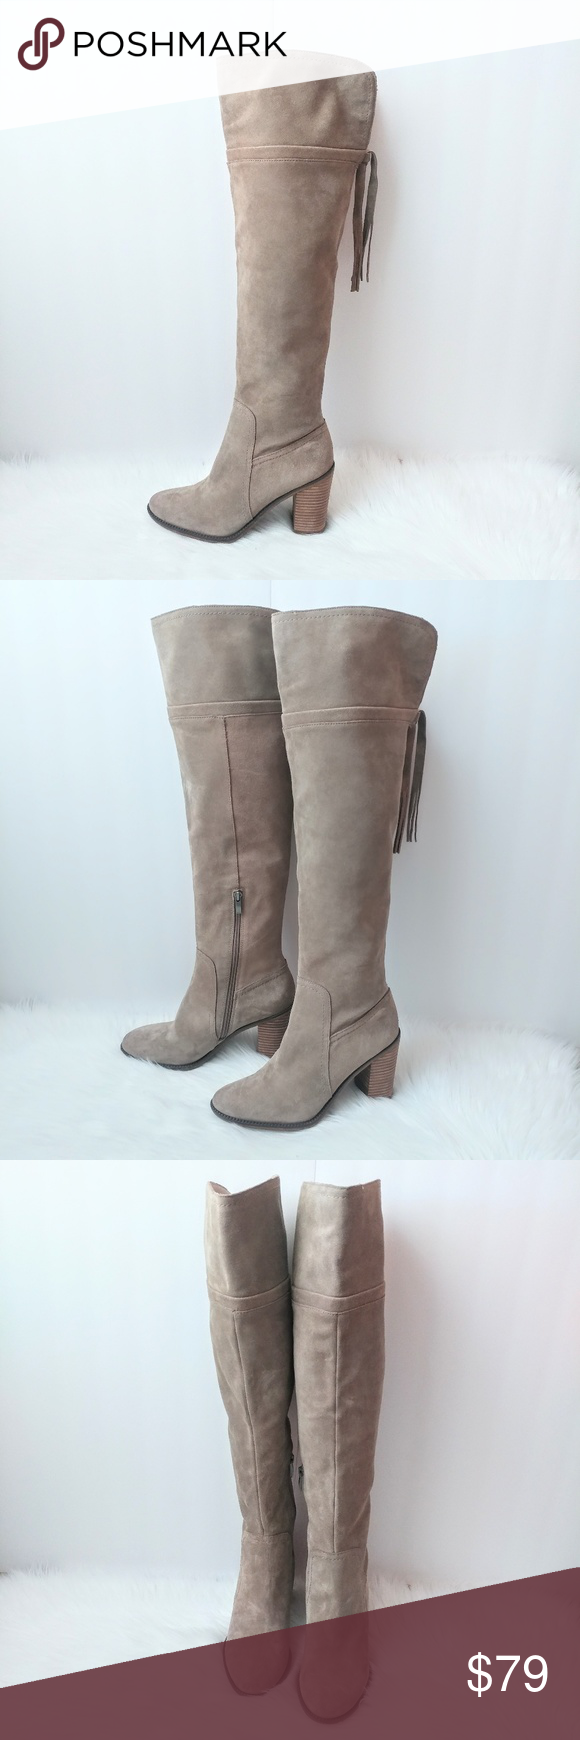 013f177680d New Franco Sarto Ellyn Over-the-Knee Boot New Franco Sarto Ellyn Over-the-Knee  Boot Condition  new